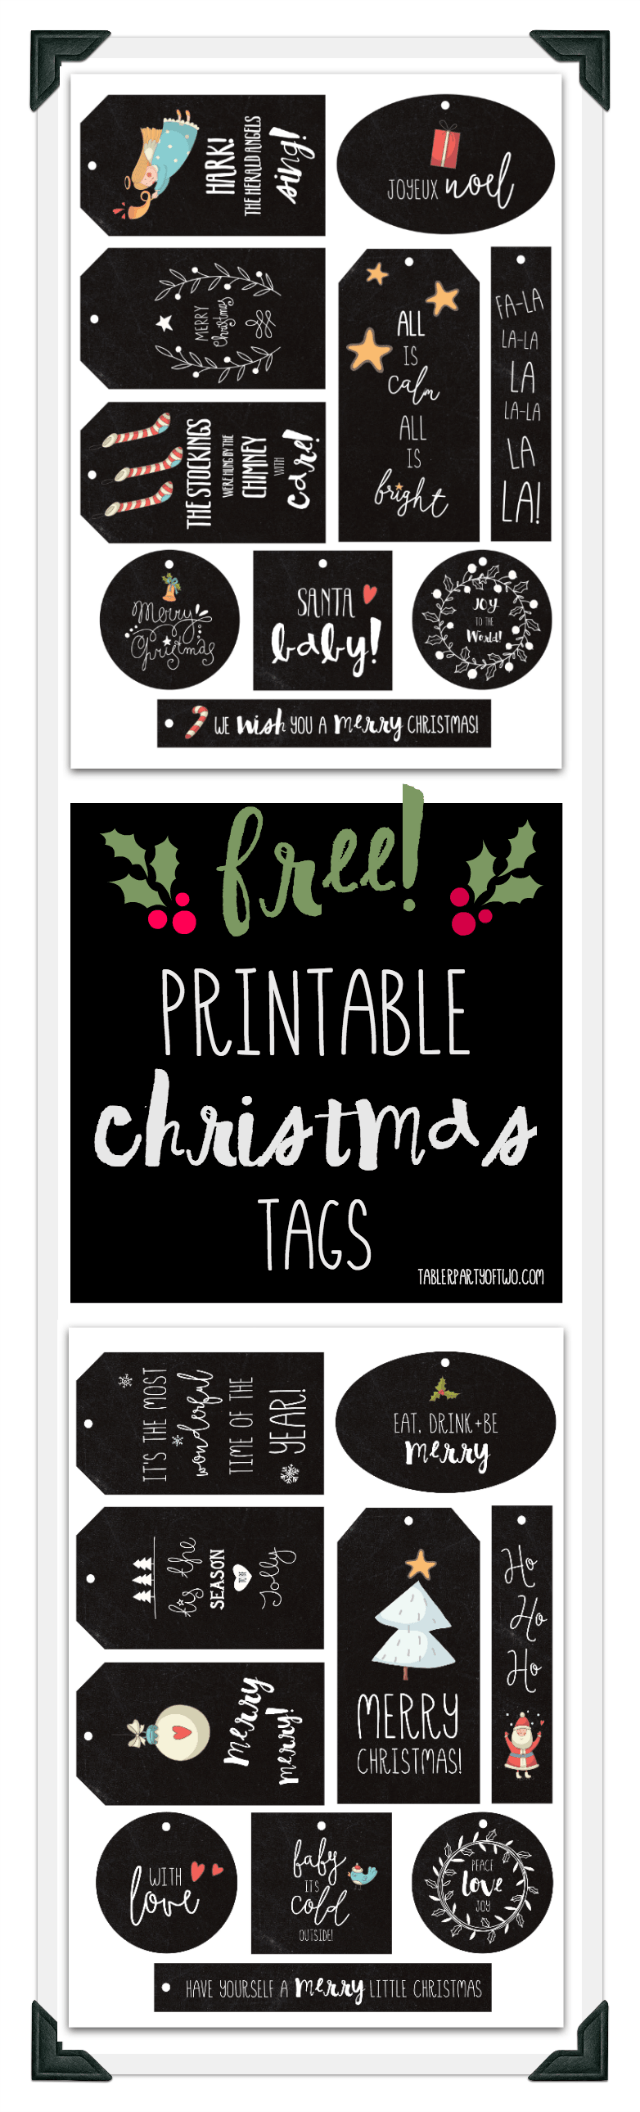 Free Printable Christmas Tags - and 13 other Christmas printables!